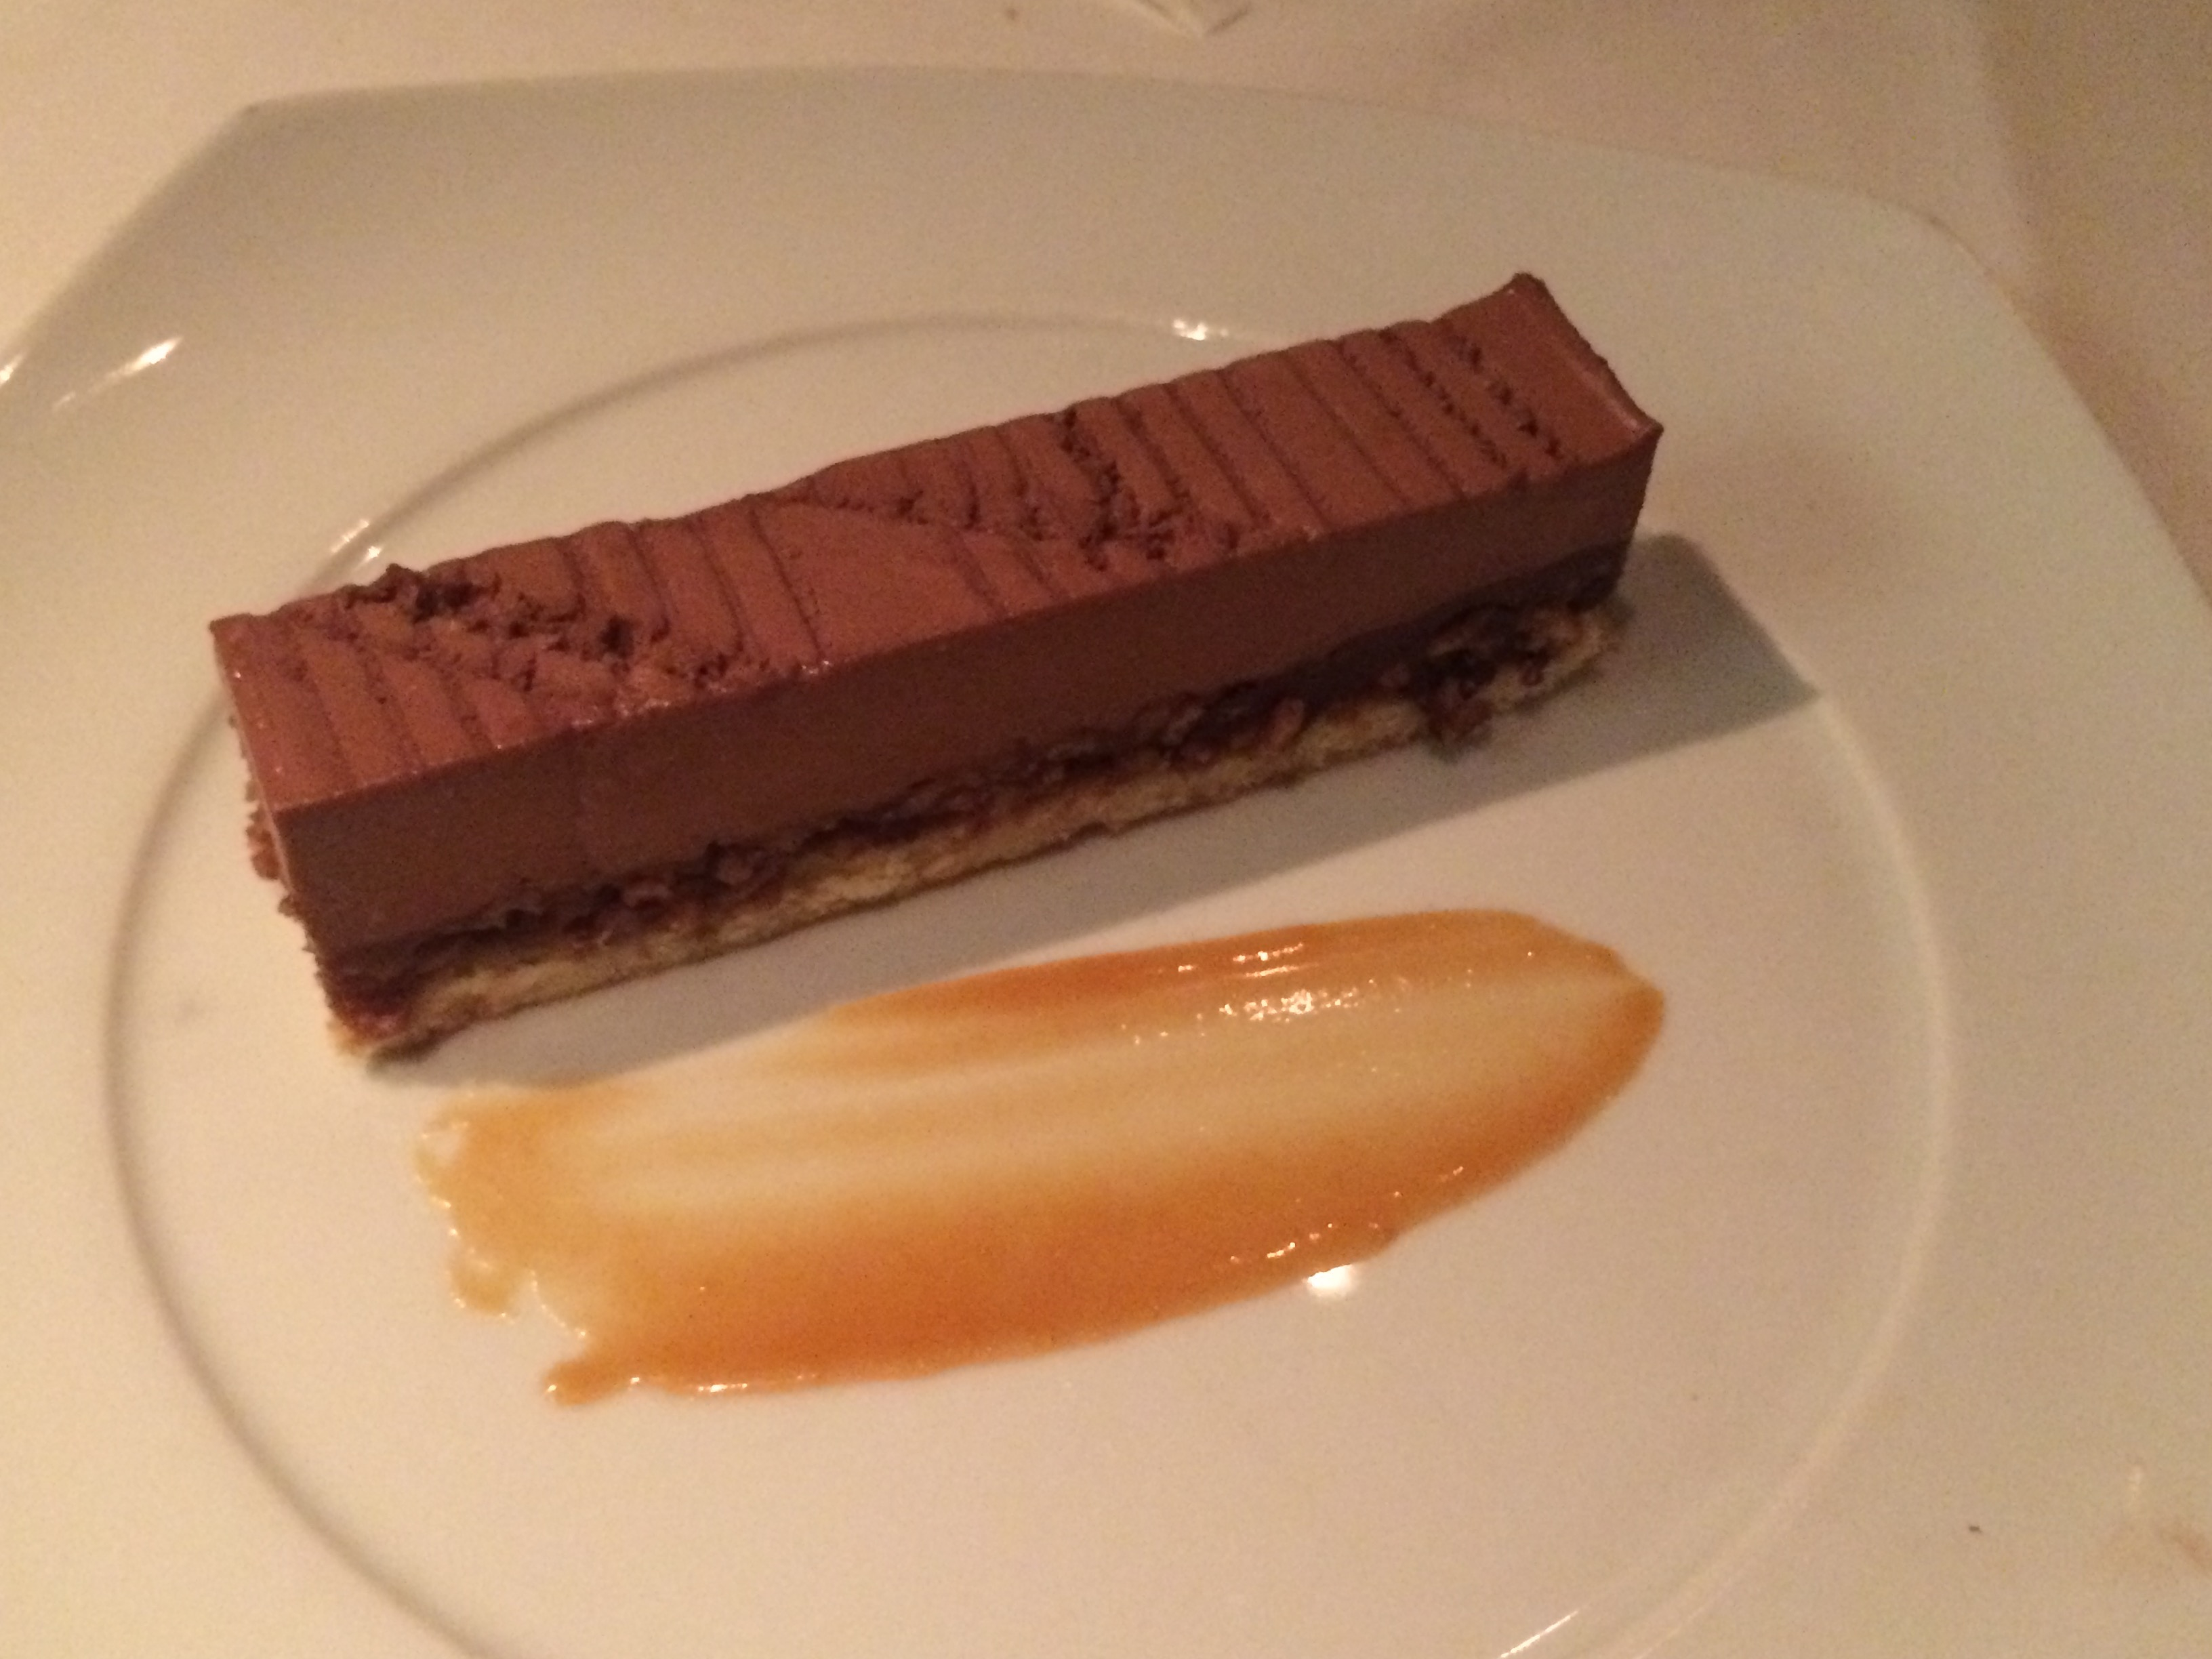 Biscuit Croustillant - a dark ganache crunchy layer of white chocolate and praline topped with chocolate mousse and served with caramel sauce